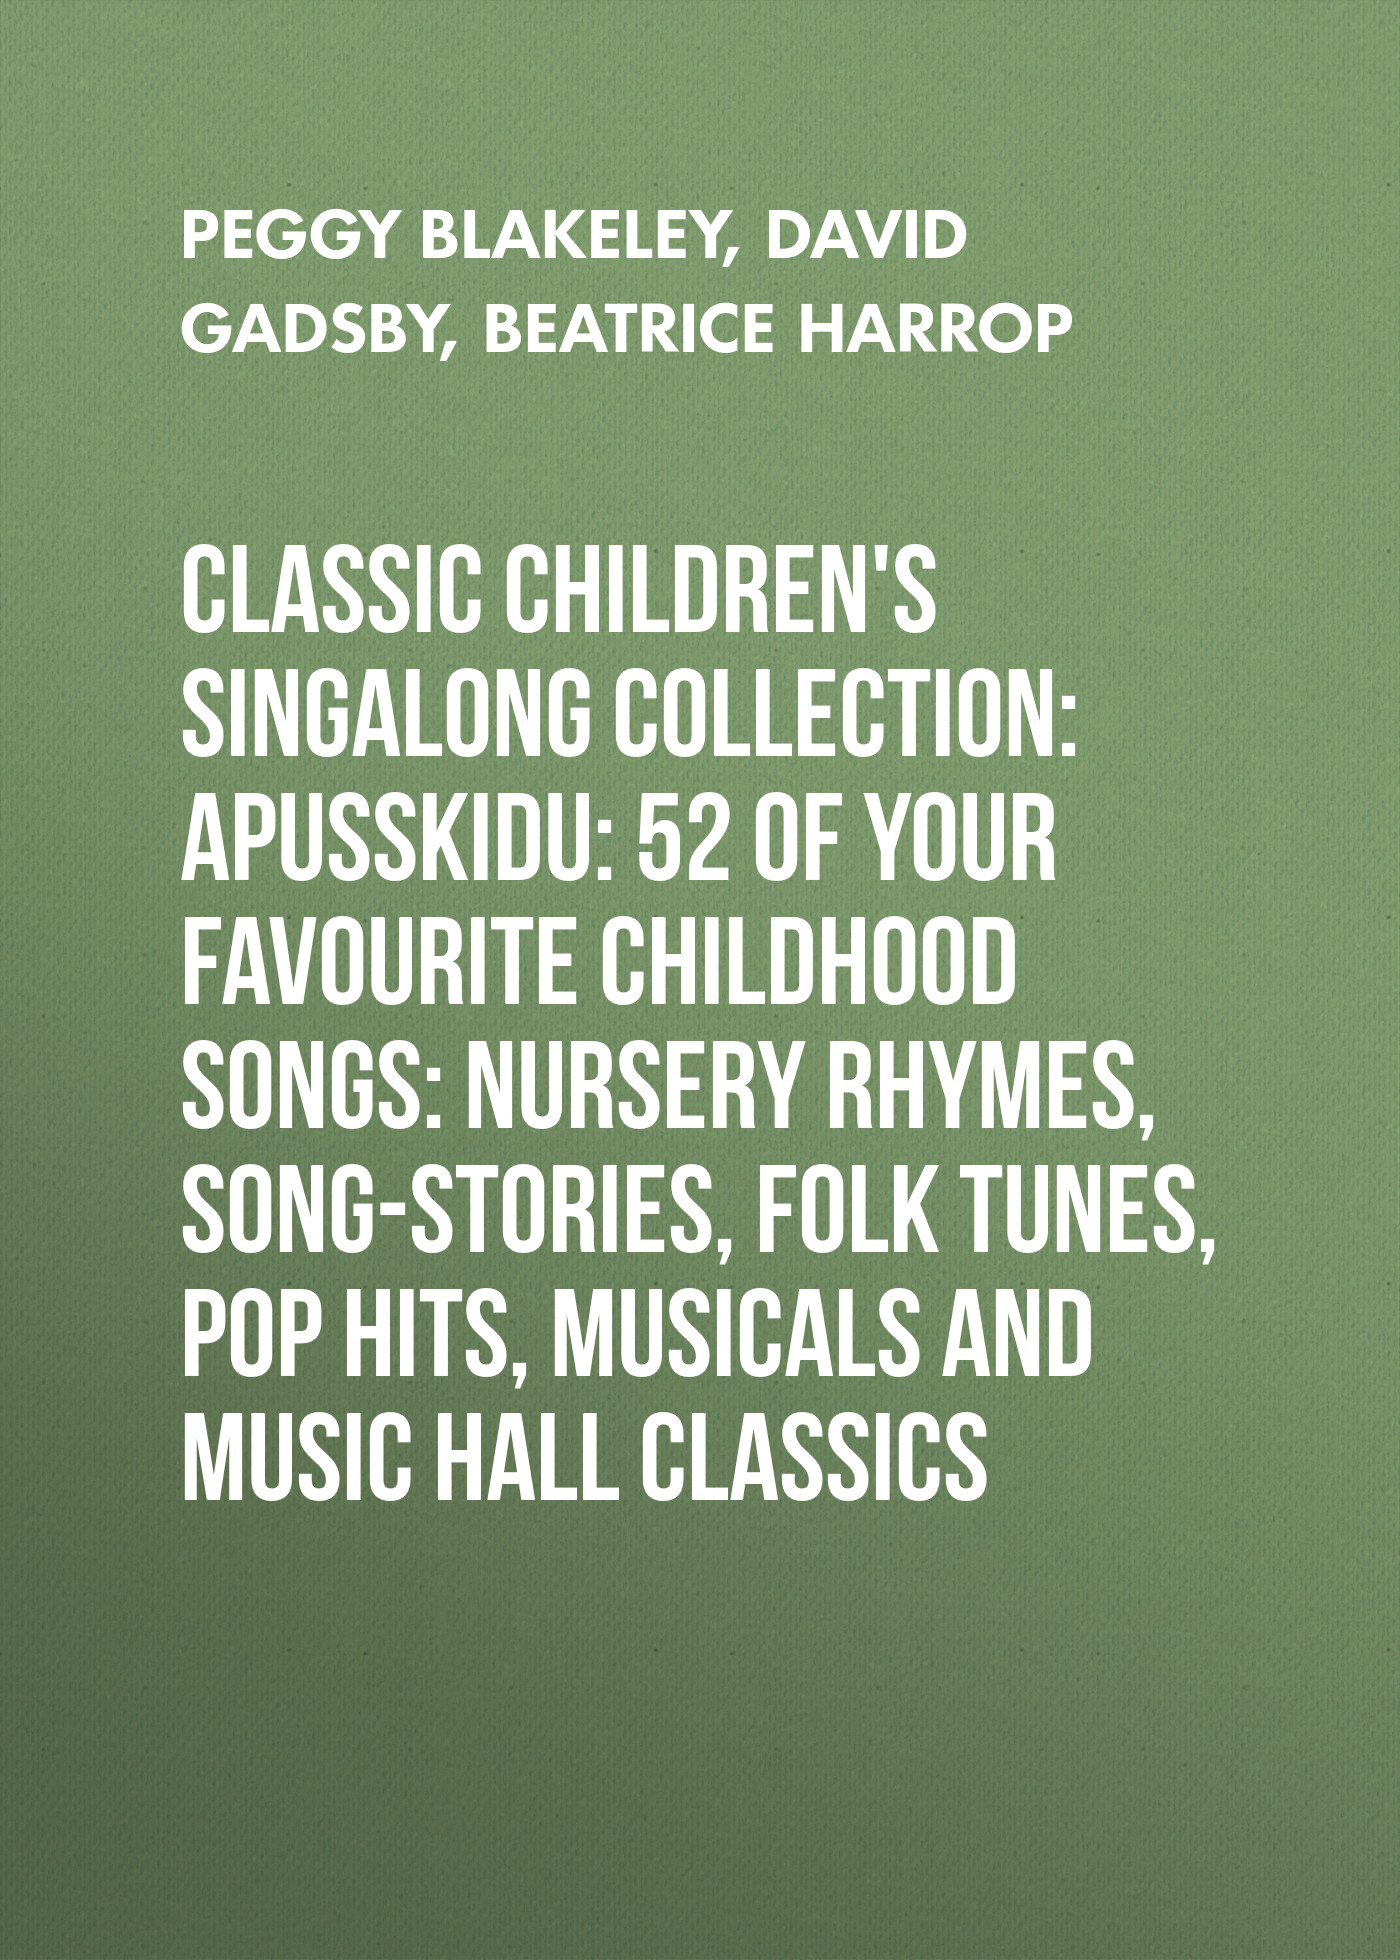 David Gadsby classic children's singalong collection: Apusskidu: 52 of your favourite childhood songs: nursery rhymes, song-stories, folk tunes, pop hits, musicals and music hall classics anonymous jagerlied german folk songs